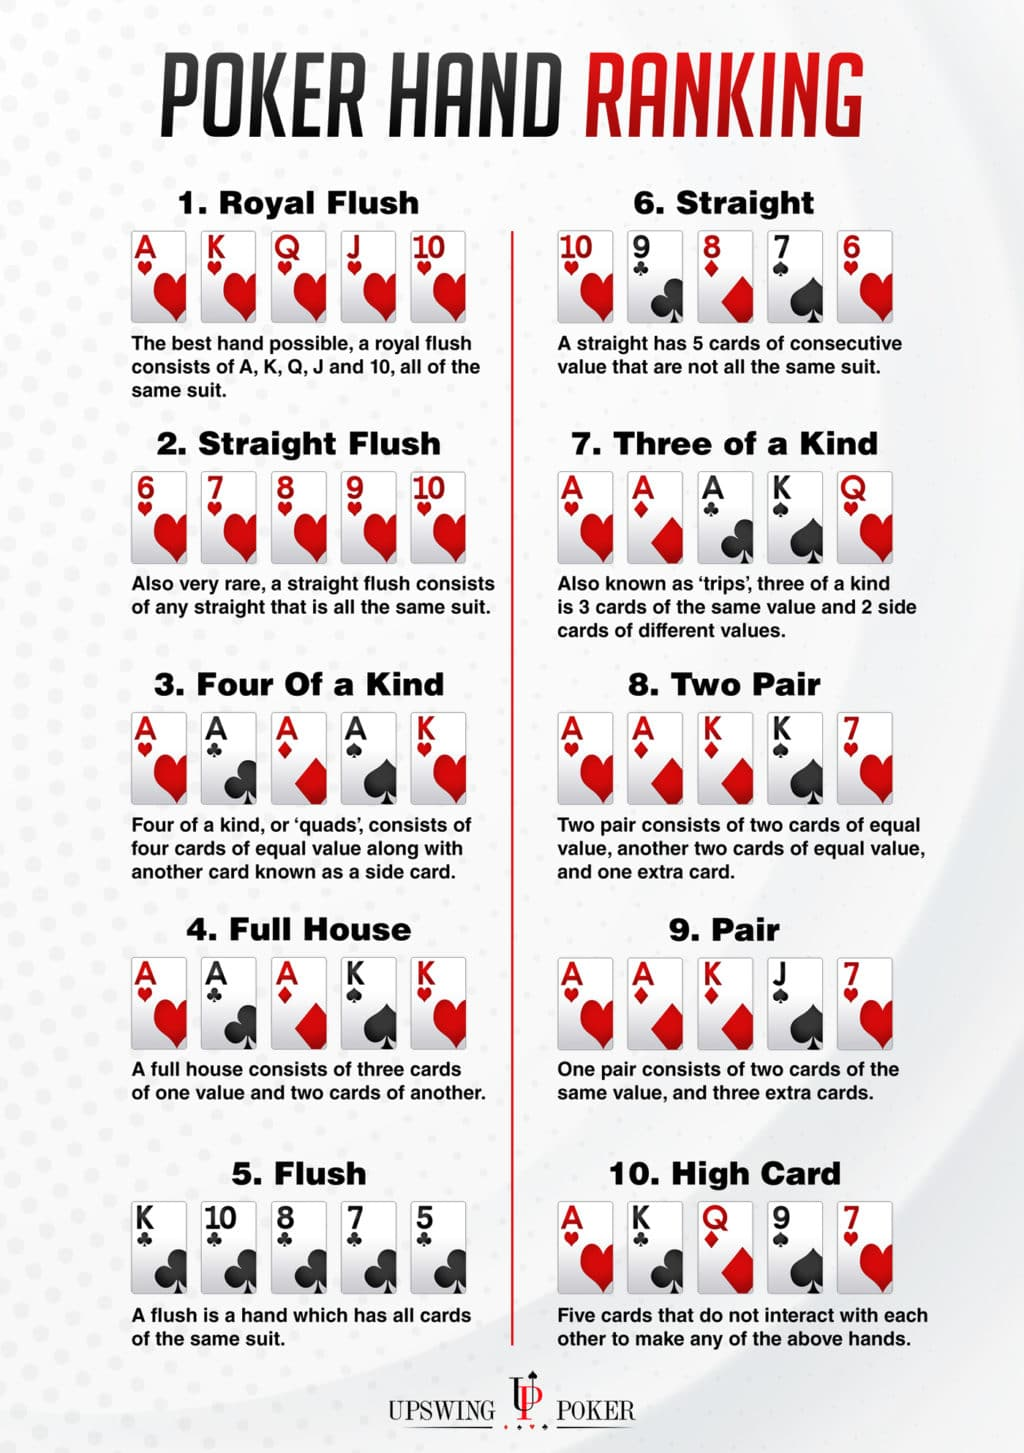 Poker Cheat Sheets - Download the Hand Rankings and More